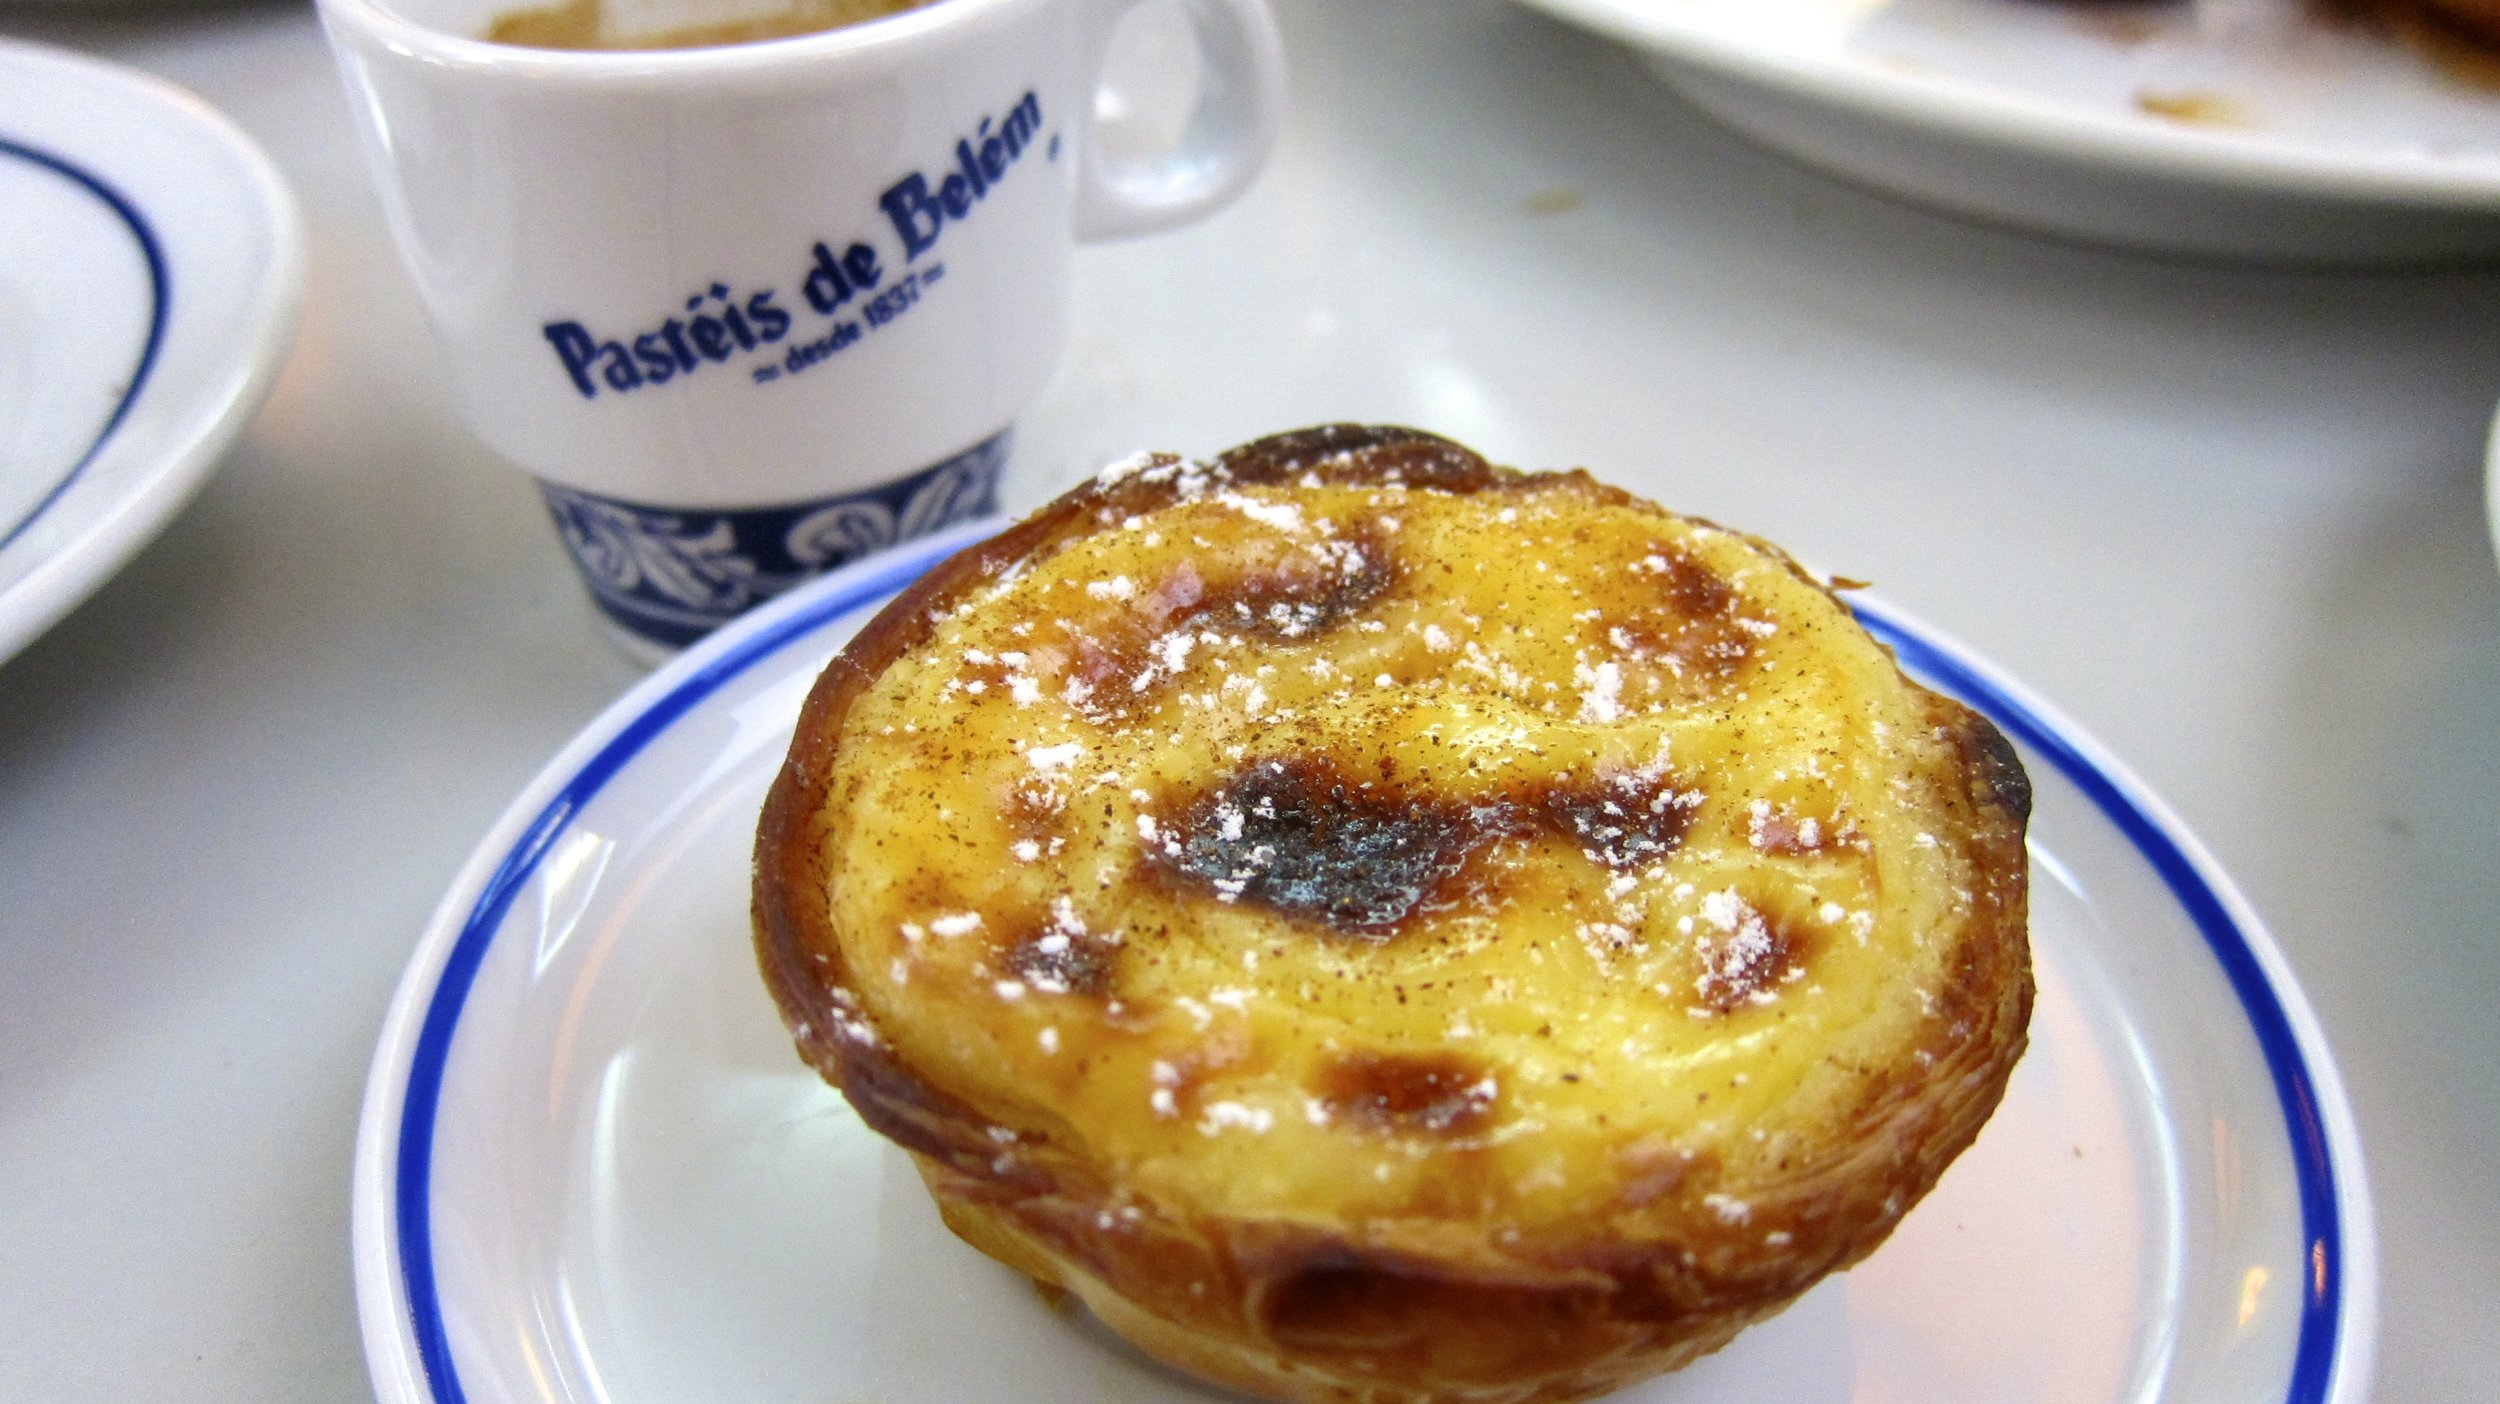 The pastel de natas at Pasteis de Belem in Lisbon.